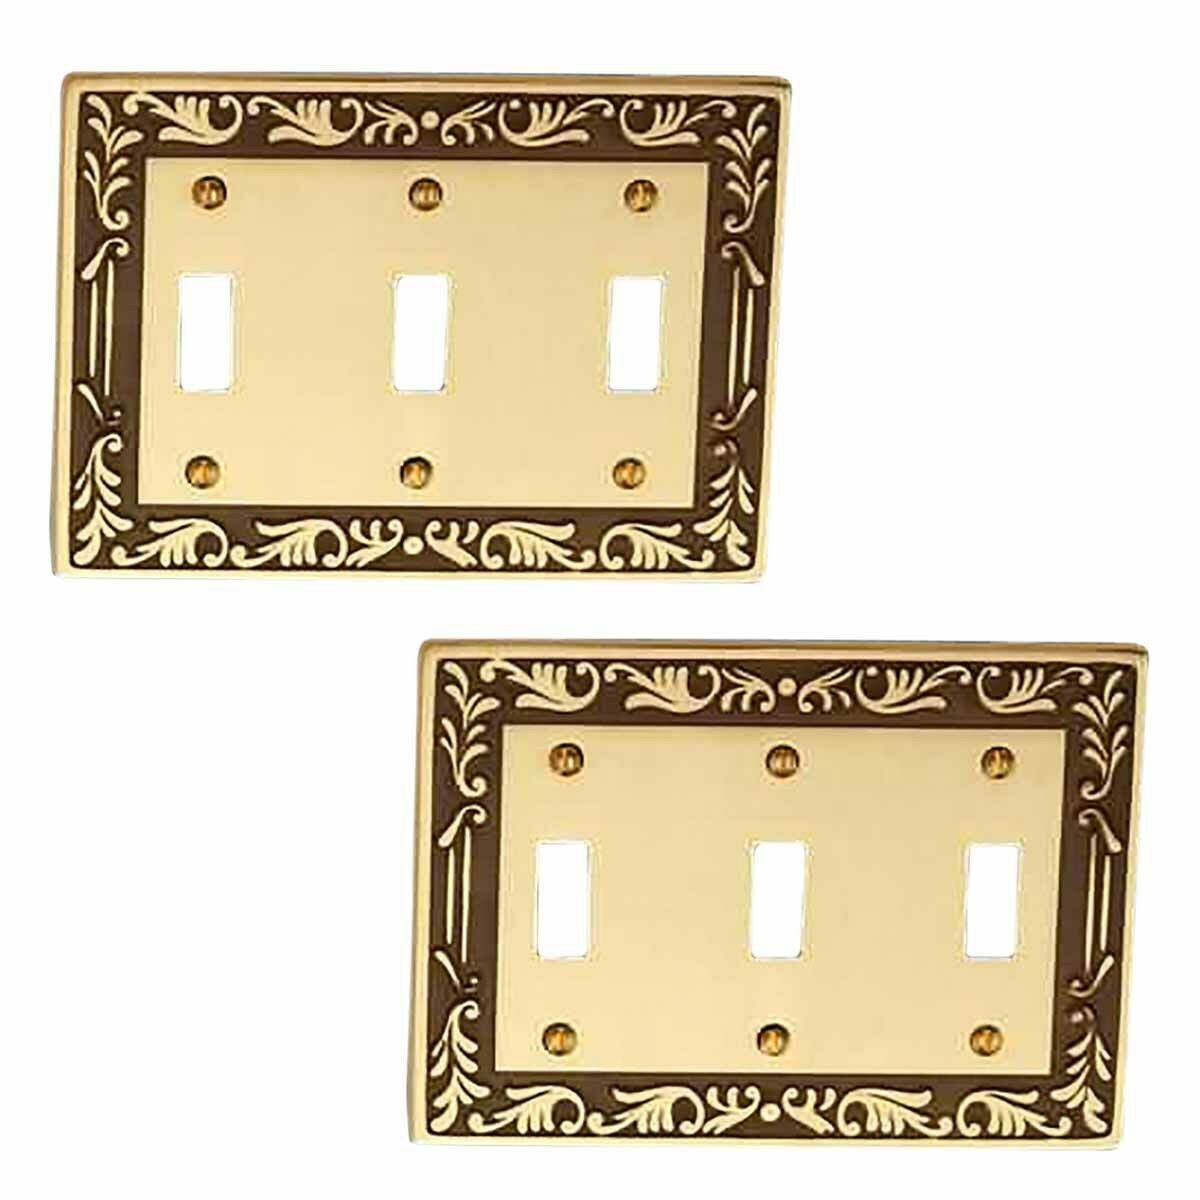 2 Victorian Switch Plate Triple Toggle Antique Solid Brass | eBay